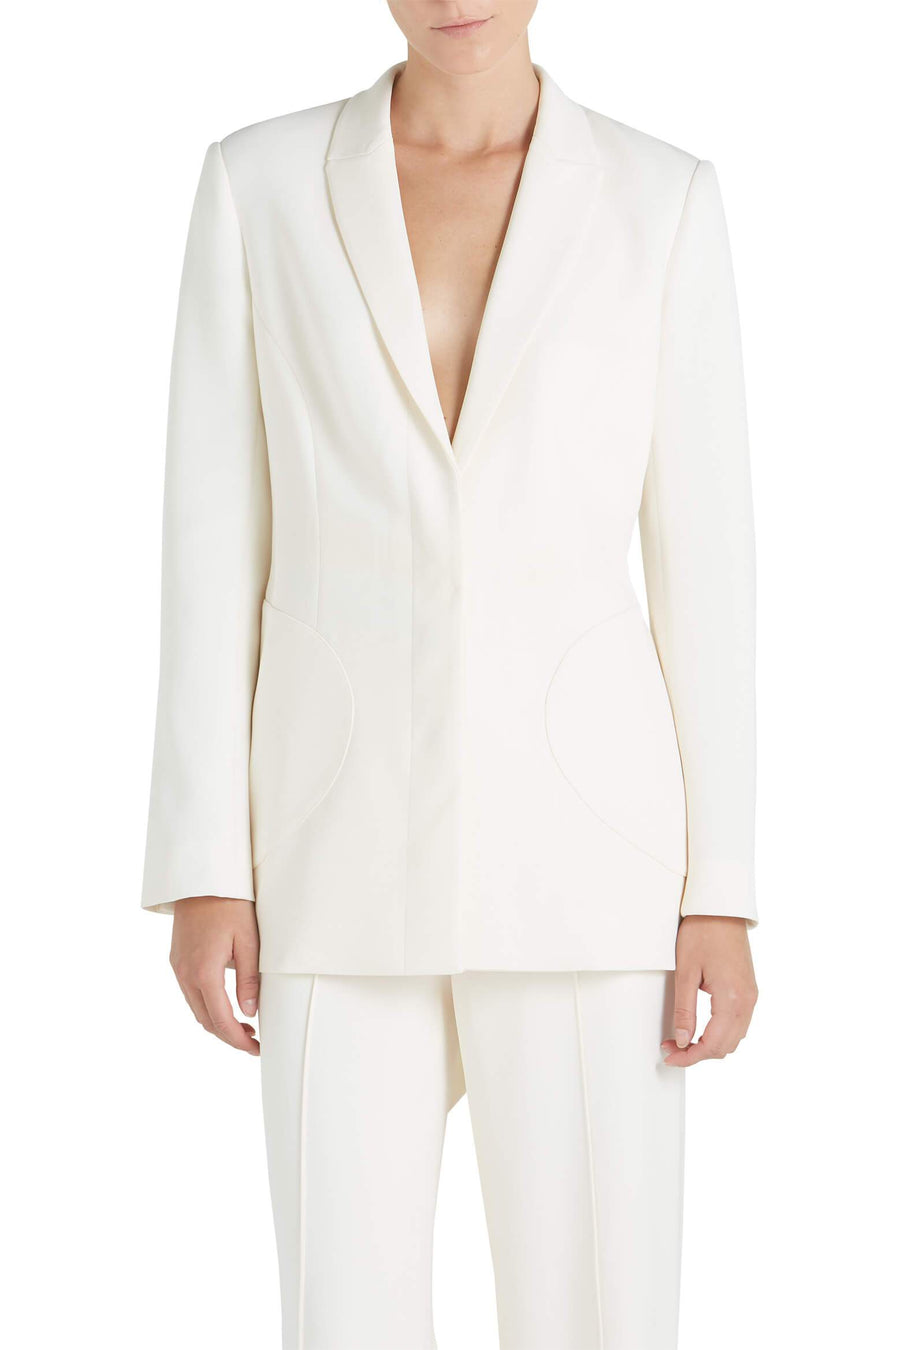 Wendy Crepe Blazer at The New Trend